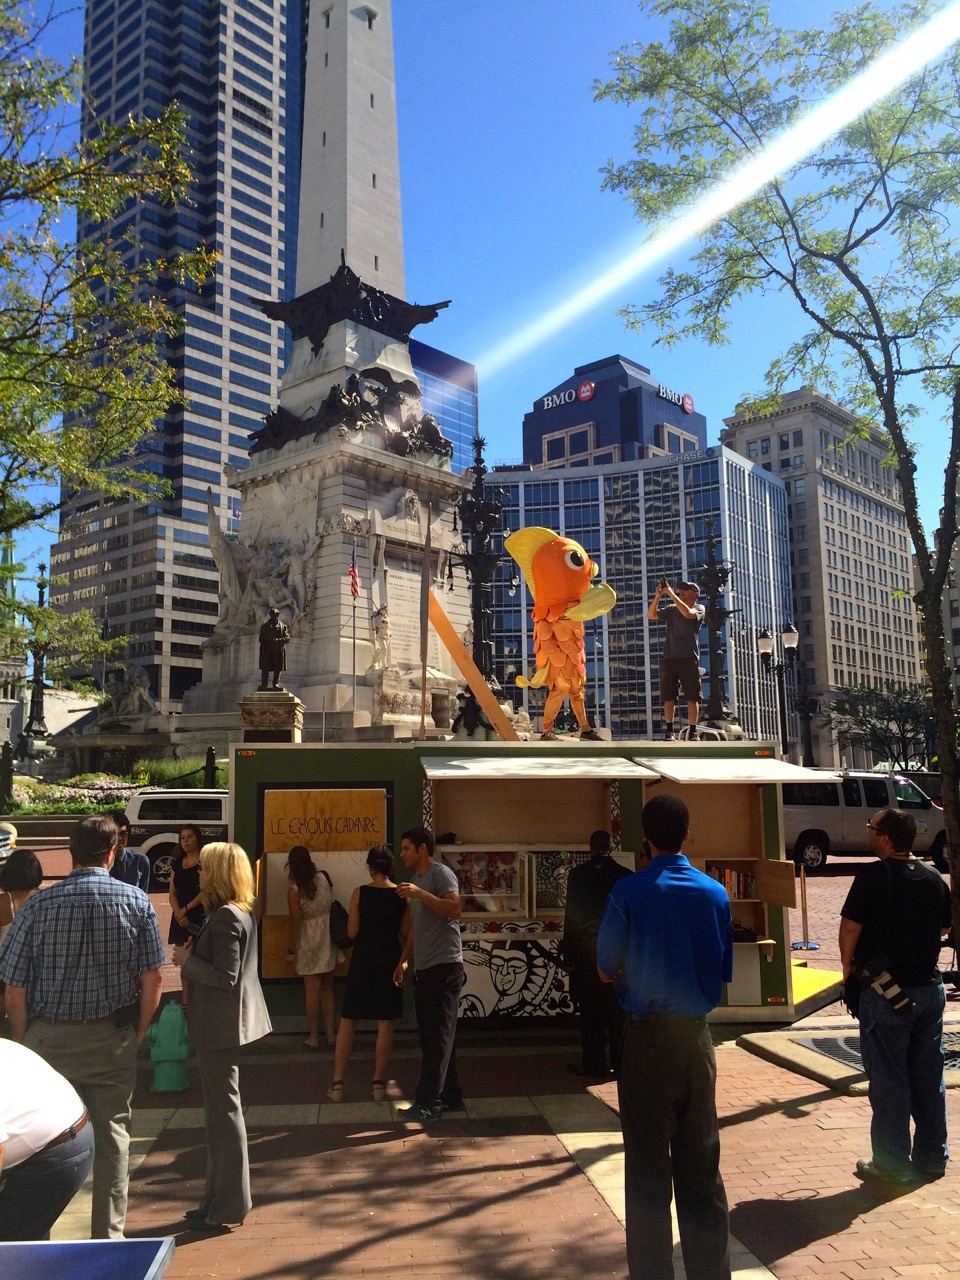 From 11 a.m. to 8 p.m. each day, programming for all ages will energize Monument Circle.